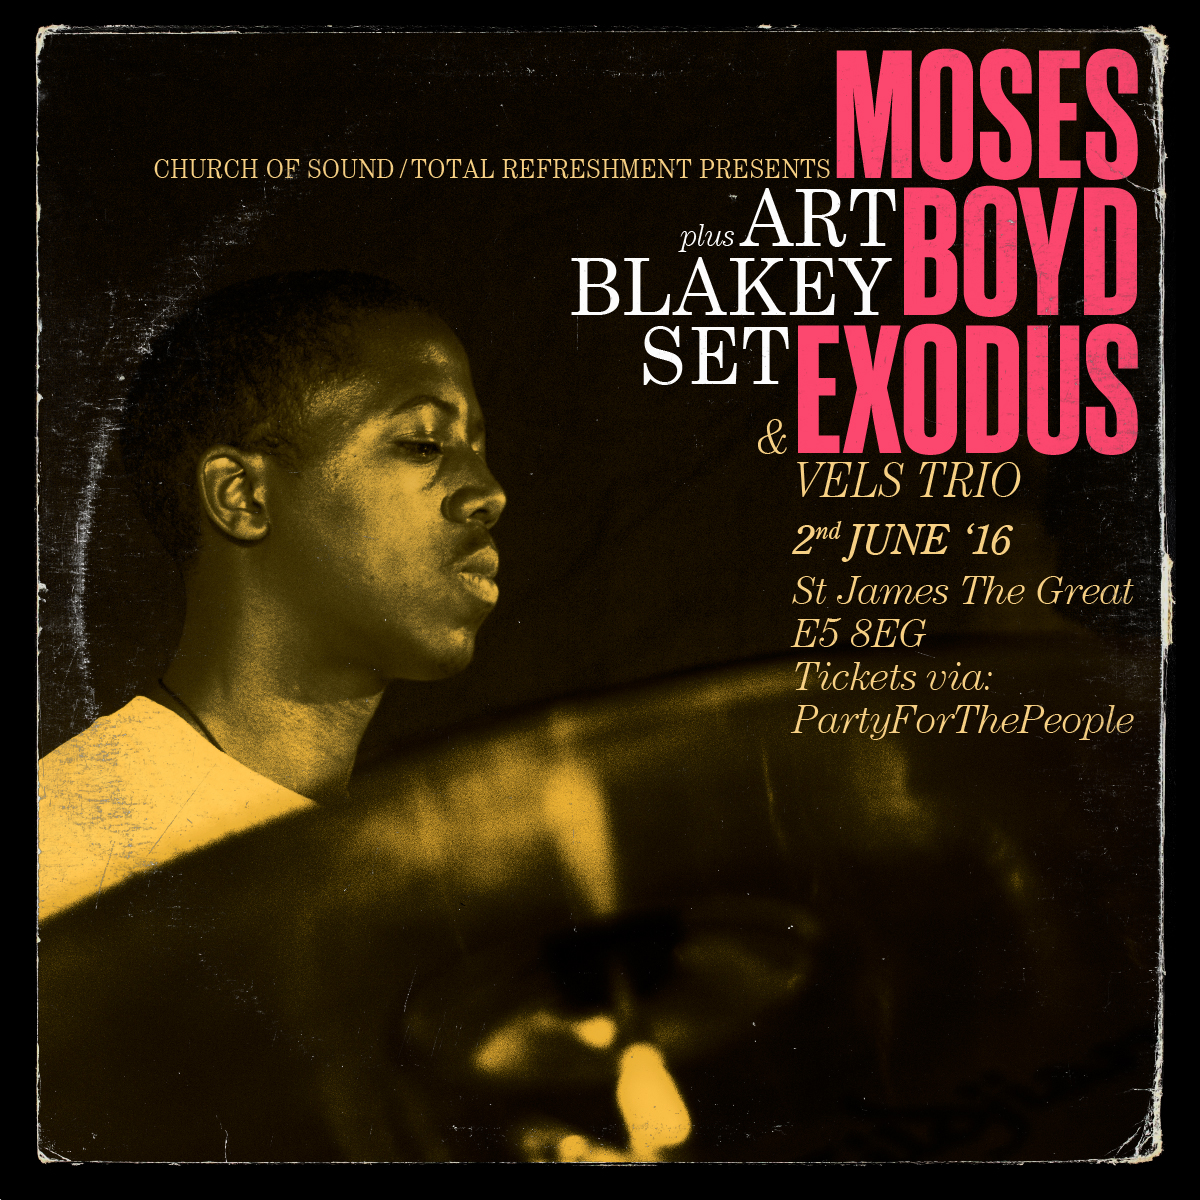 Website-2-Moses-Boyd